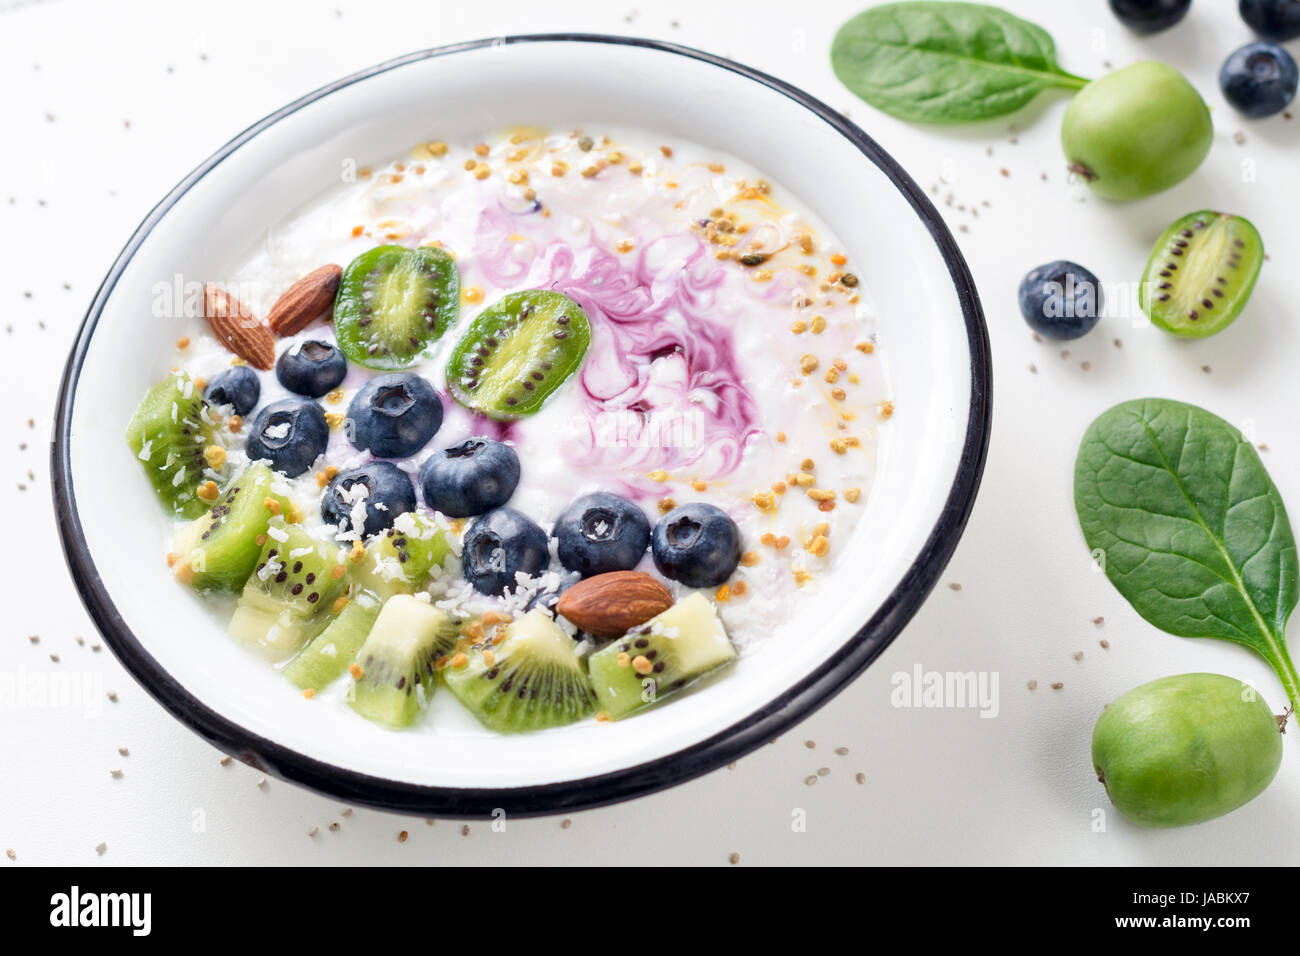 Smoothie bowl with acai berry, kiwi, blueberry, almond, coconut, bee pollen and baby spinach on white background. - Stock Image